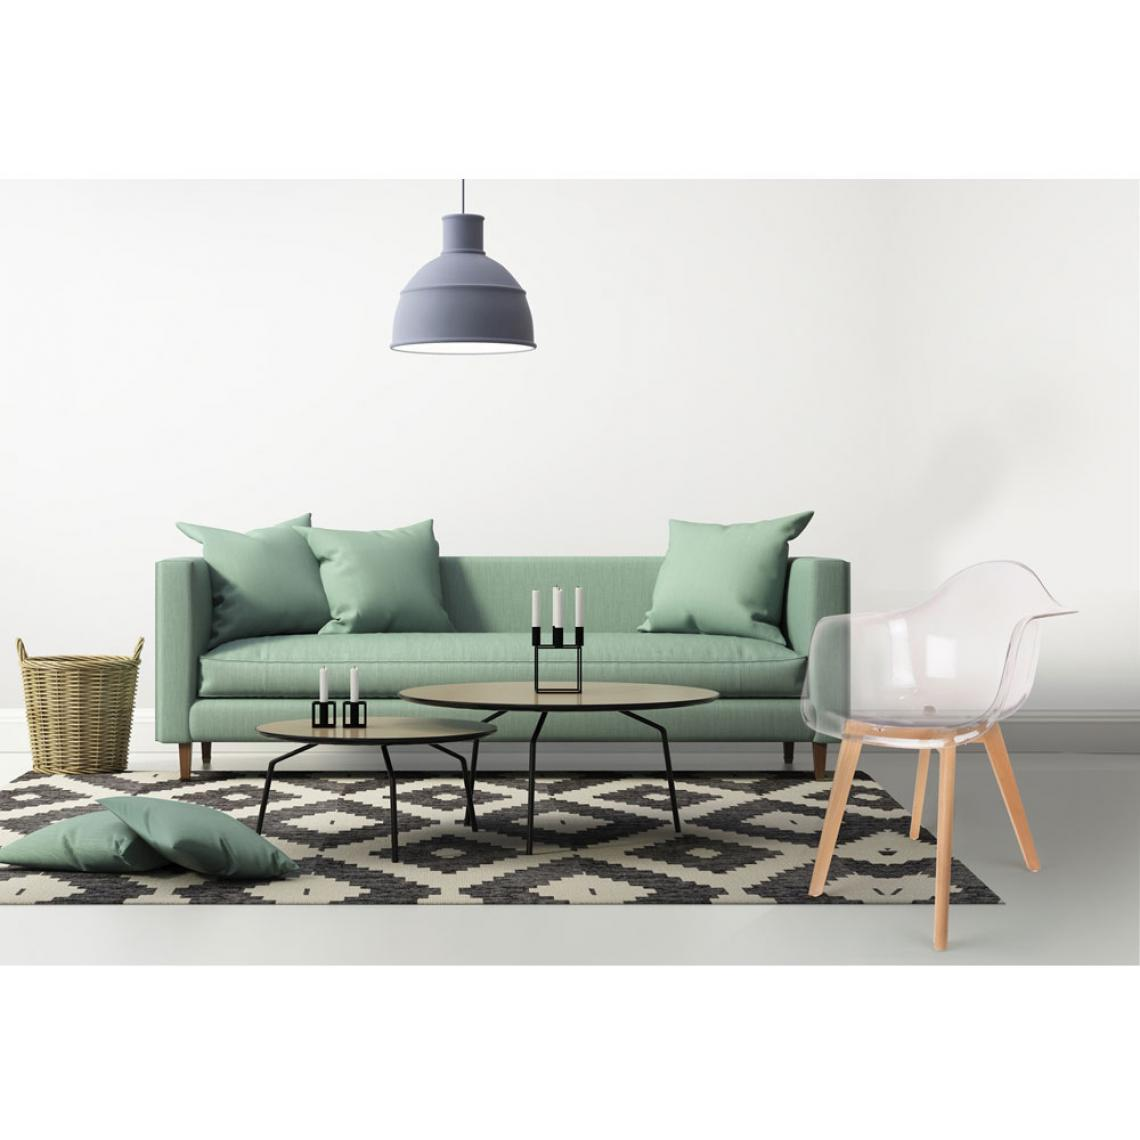 Site Deco Scandinave Chaise Scandinave Avec Accoudoir Transparent Orkney 3 Suisses